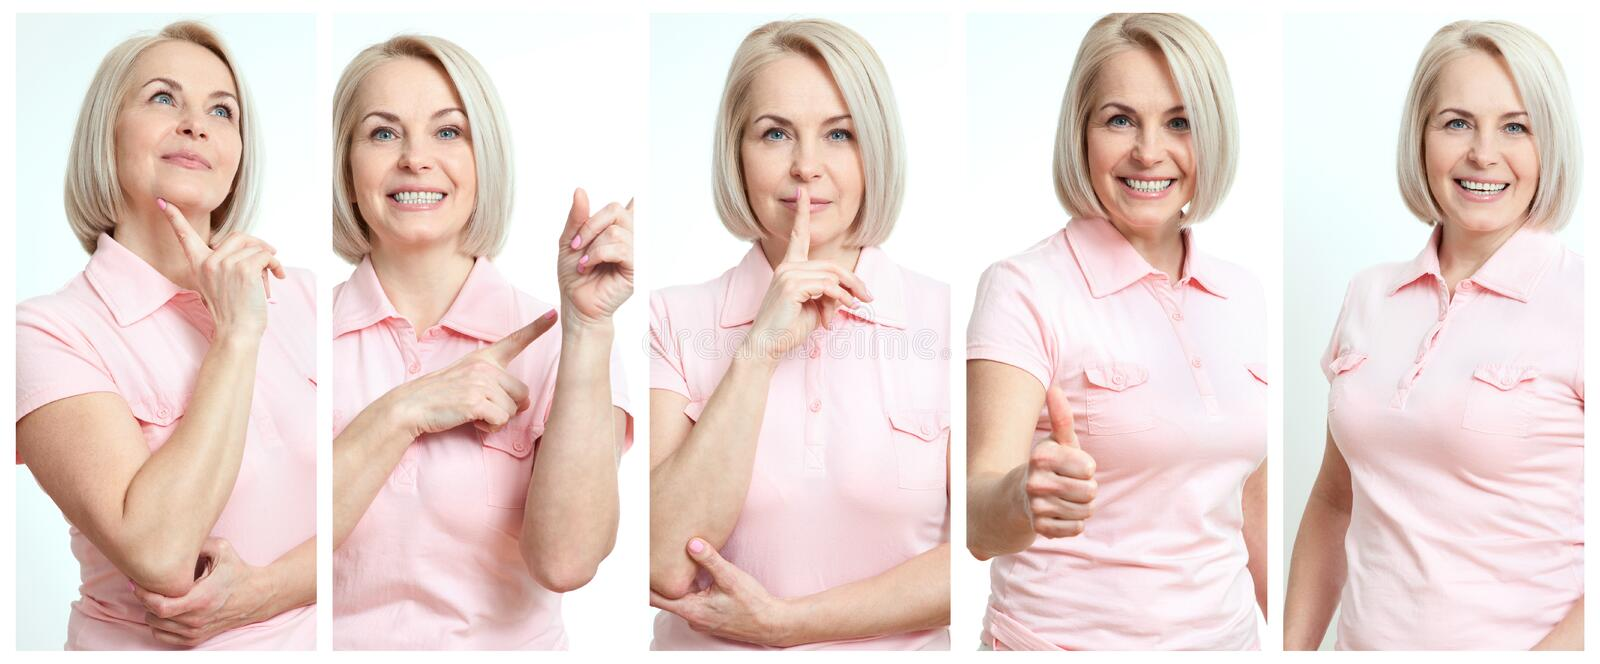 Woman in different situations collage. Beautiful middle-aged businesswomen in joy, serious, showing, surprised royalty free stock images